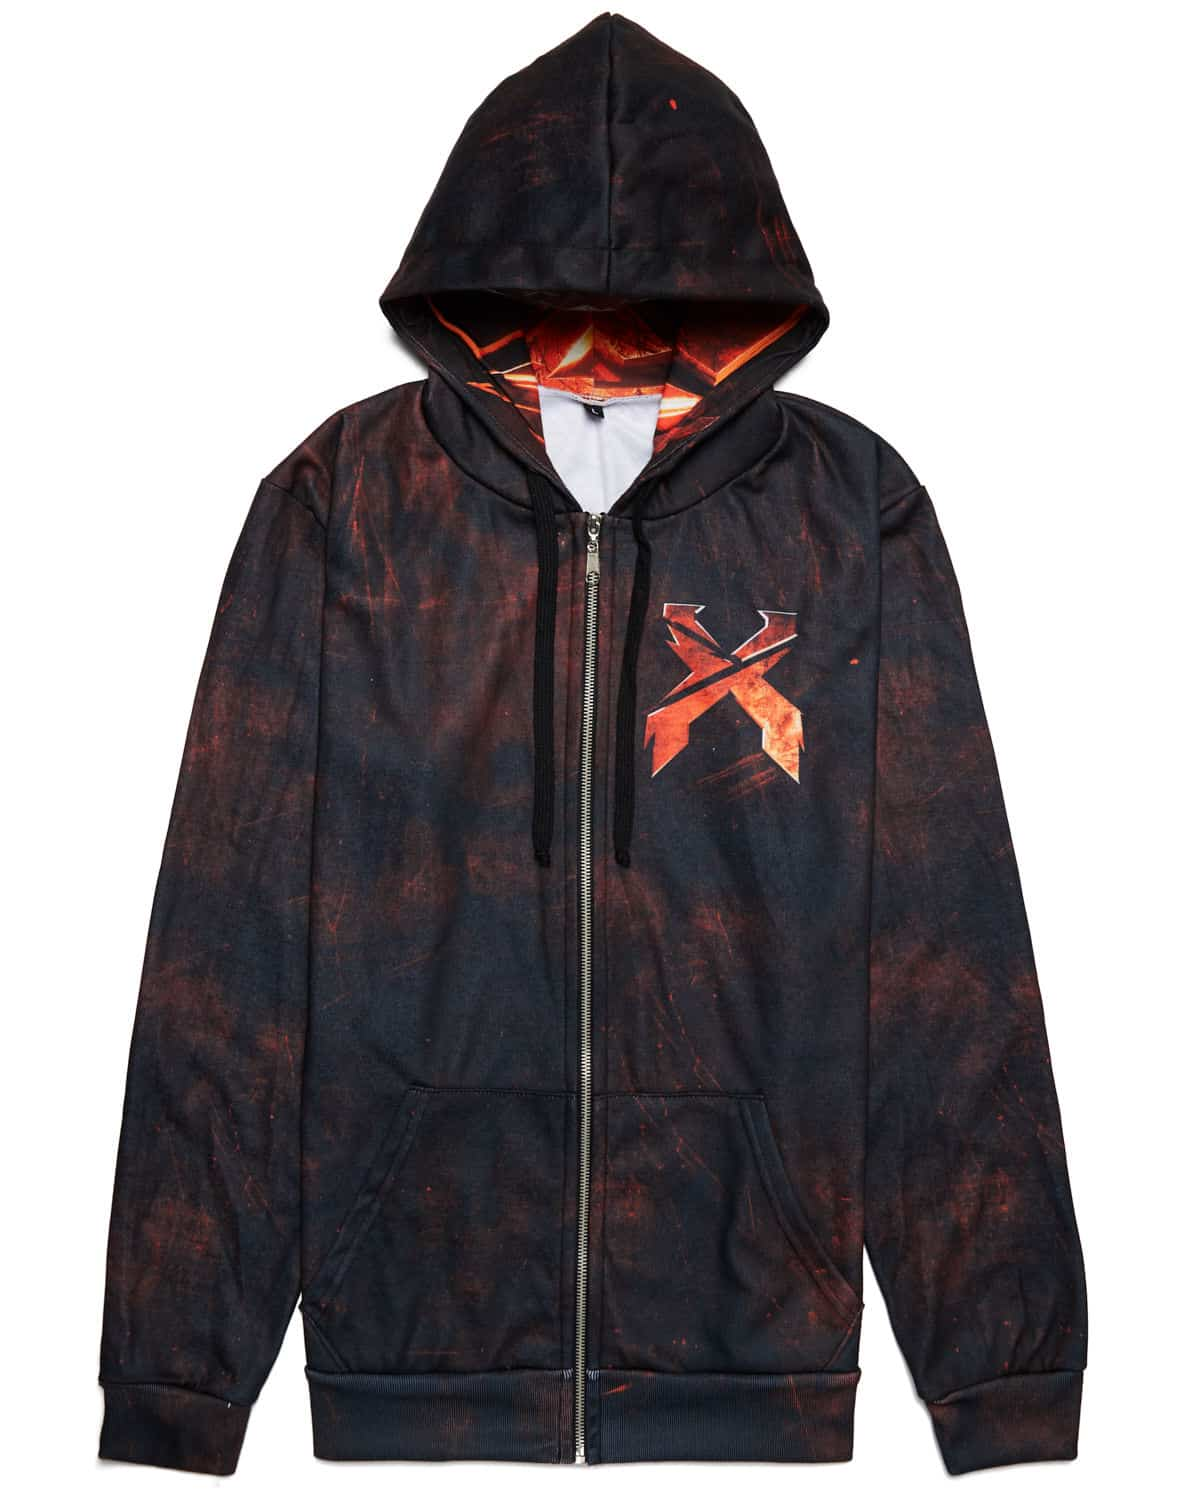 Excision 'Decepticon' Full-Zip Hoodie - Ruby